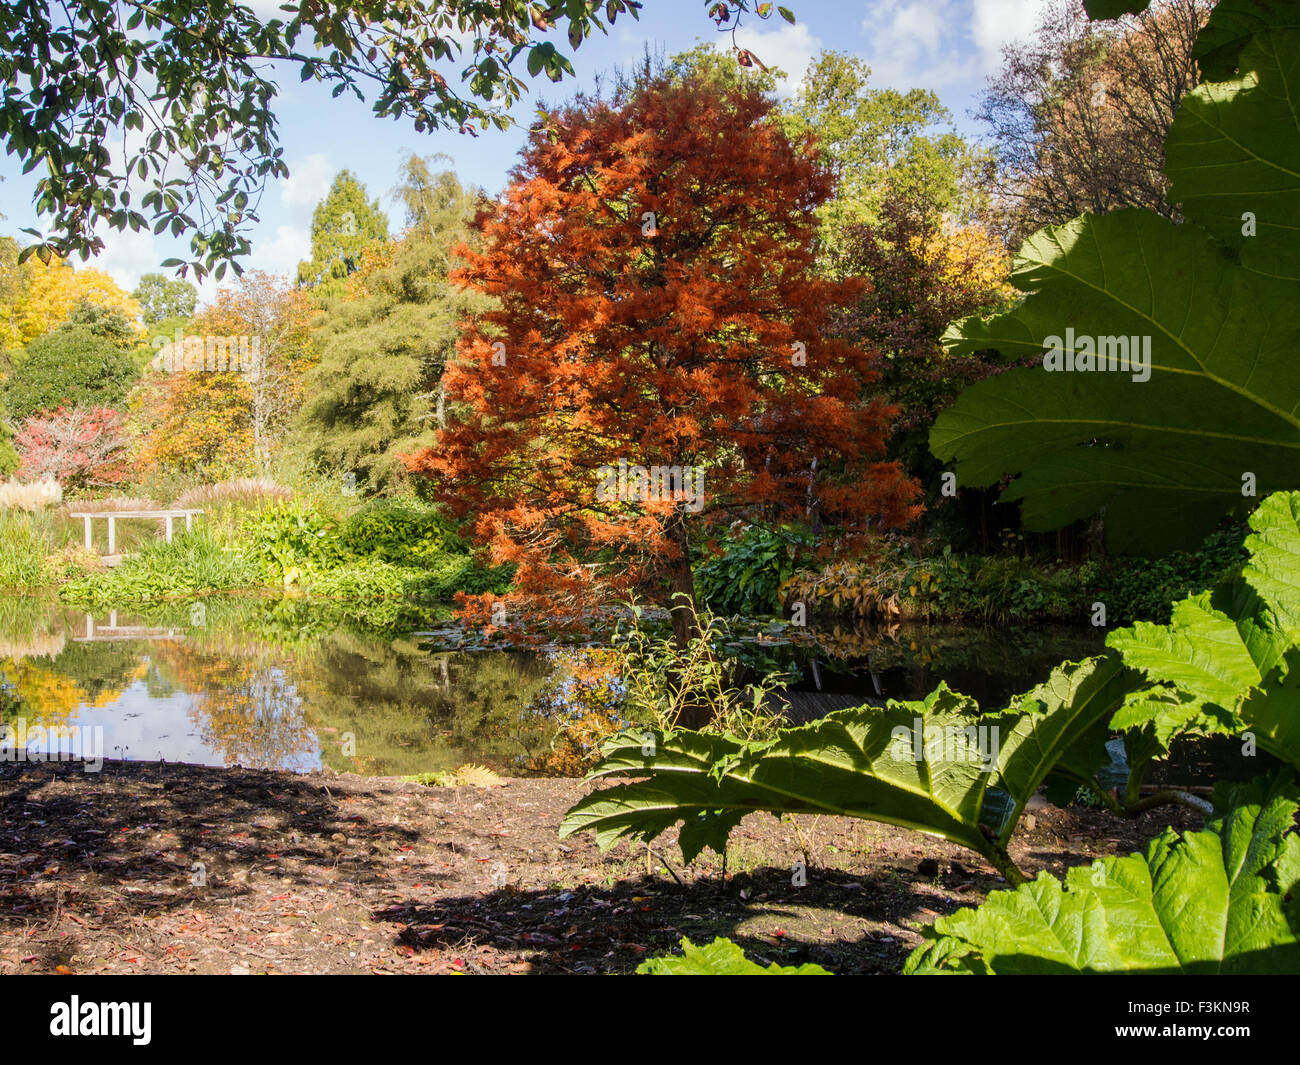 Hillier Gardens And Arboretum Stock Photos & Hillier Gardens And ...